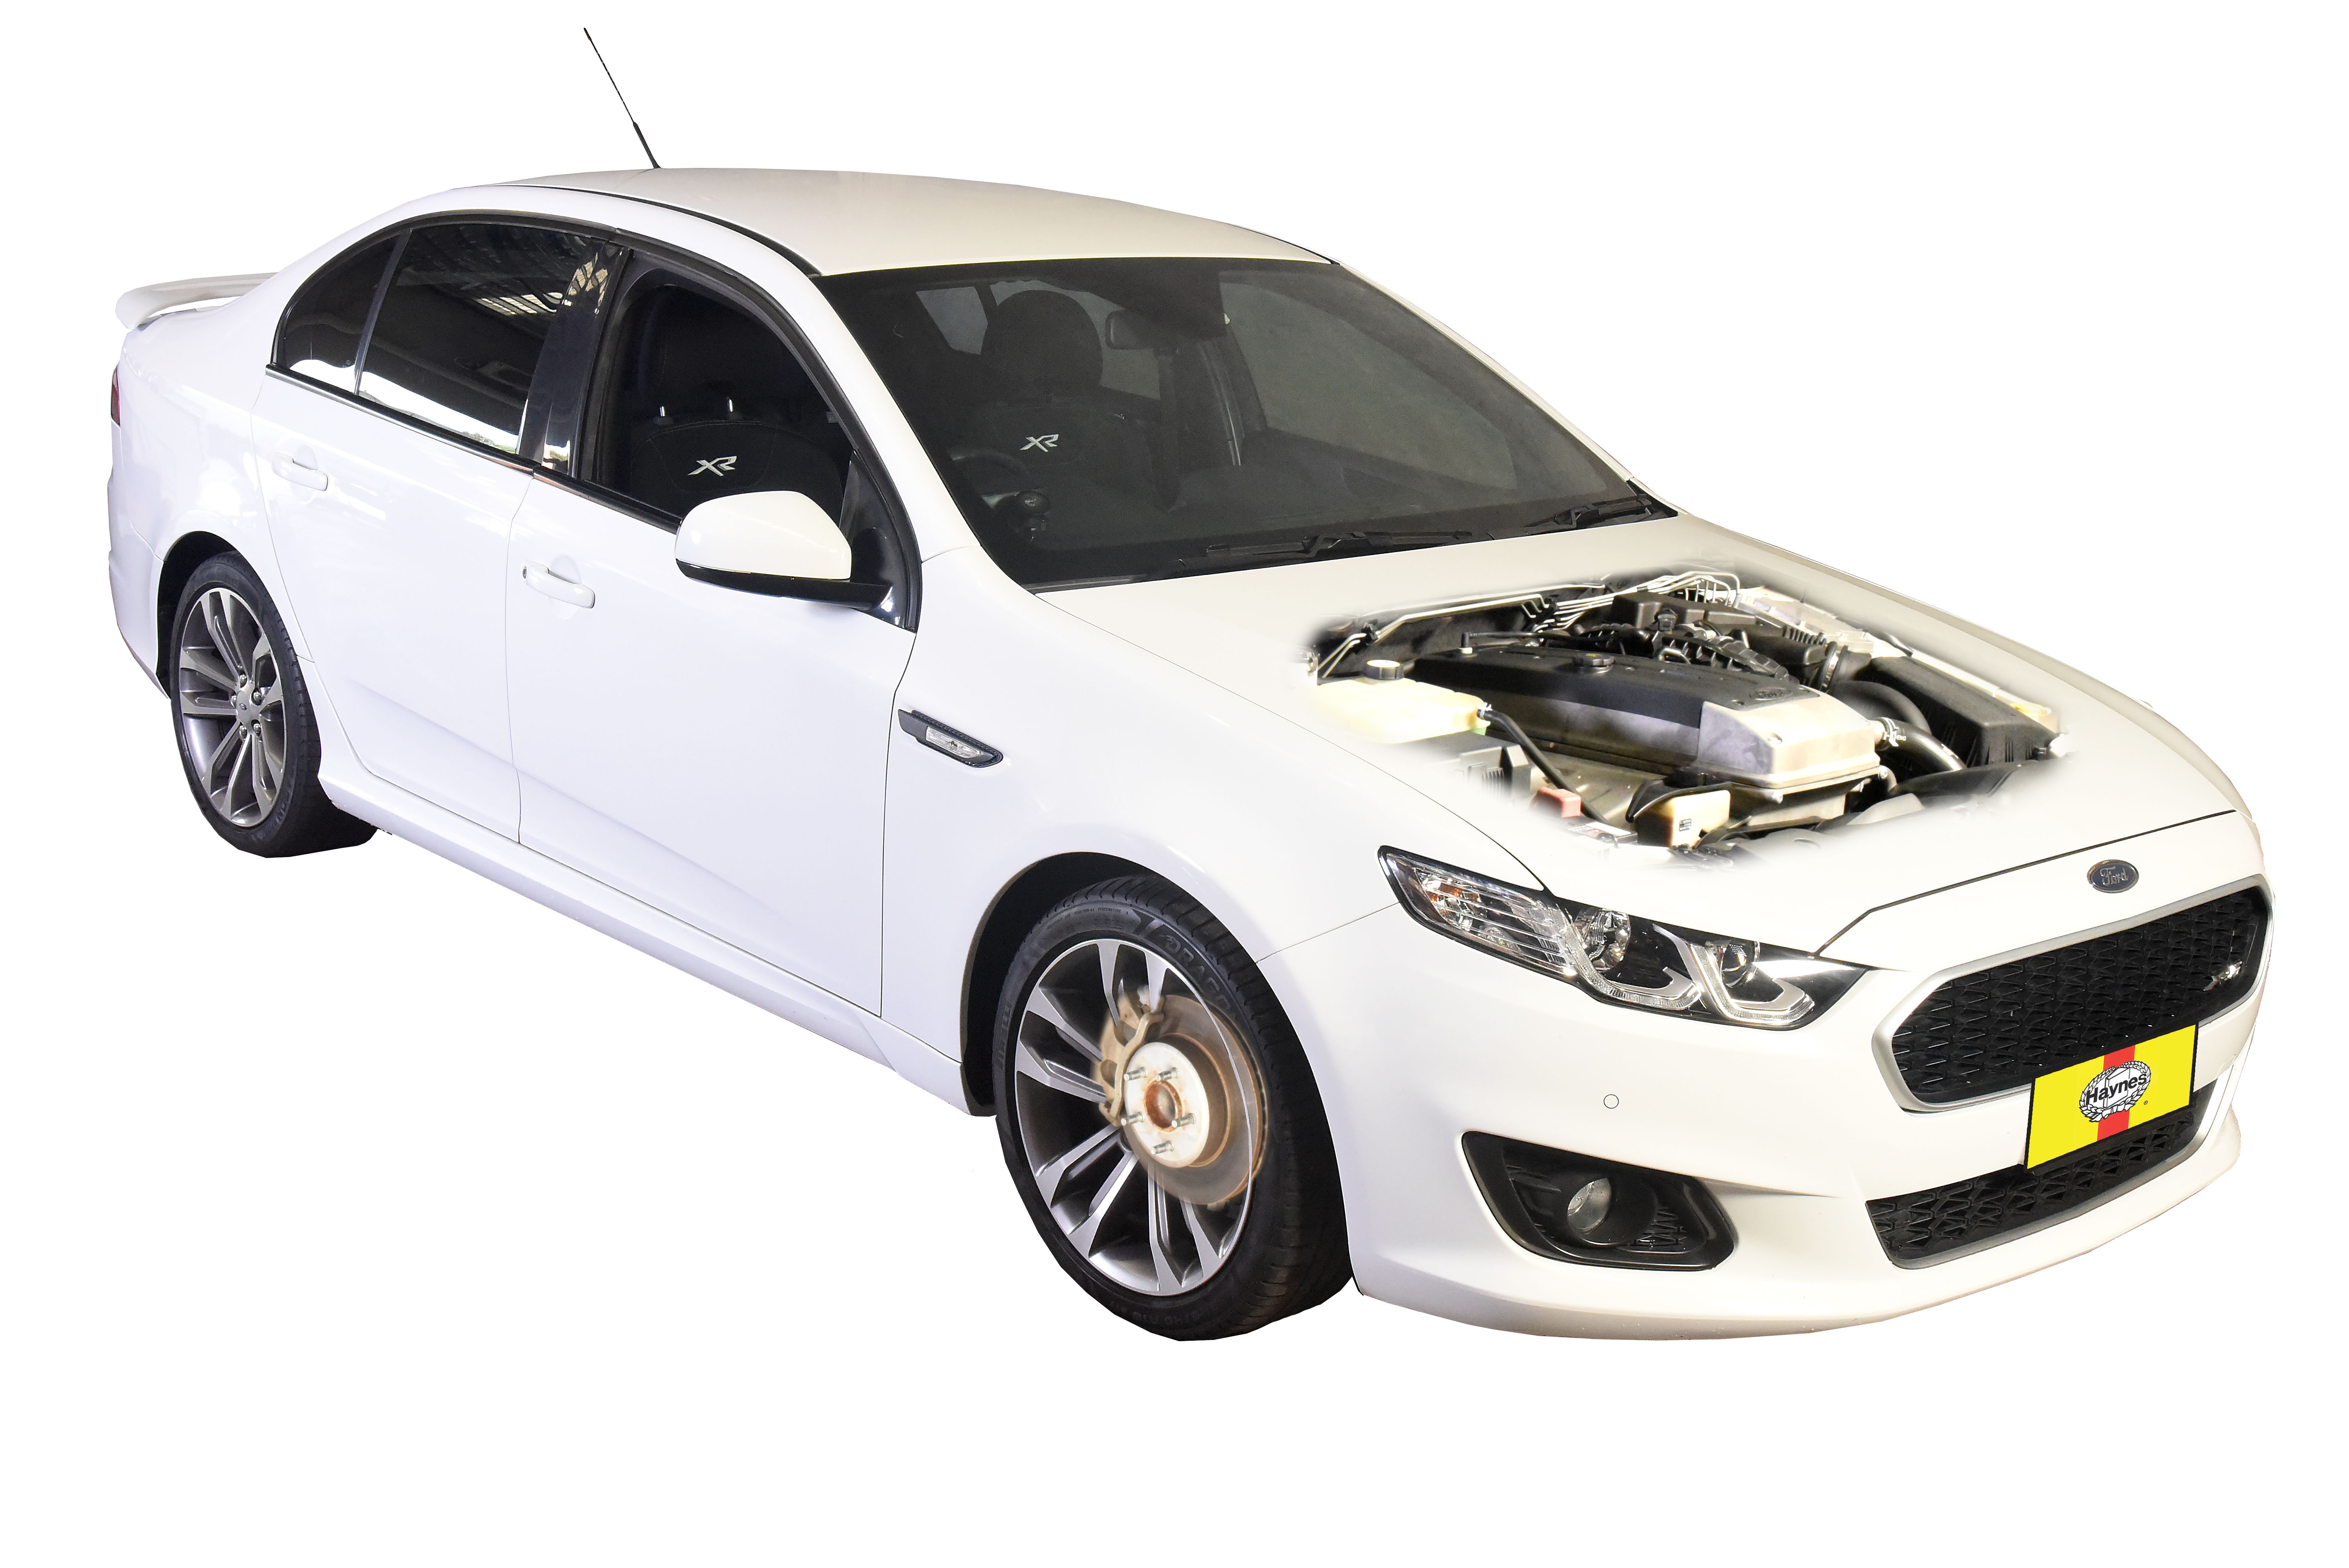 Picture of Ford Falcon